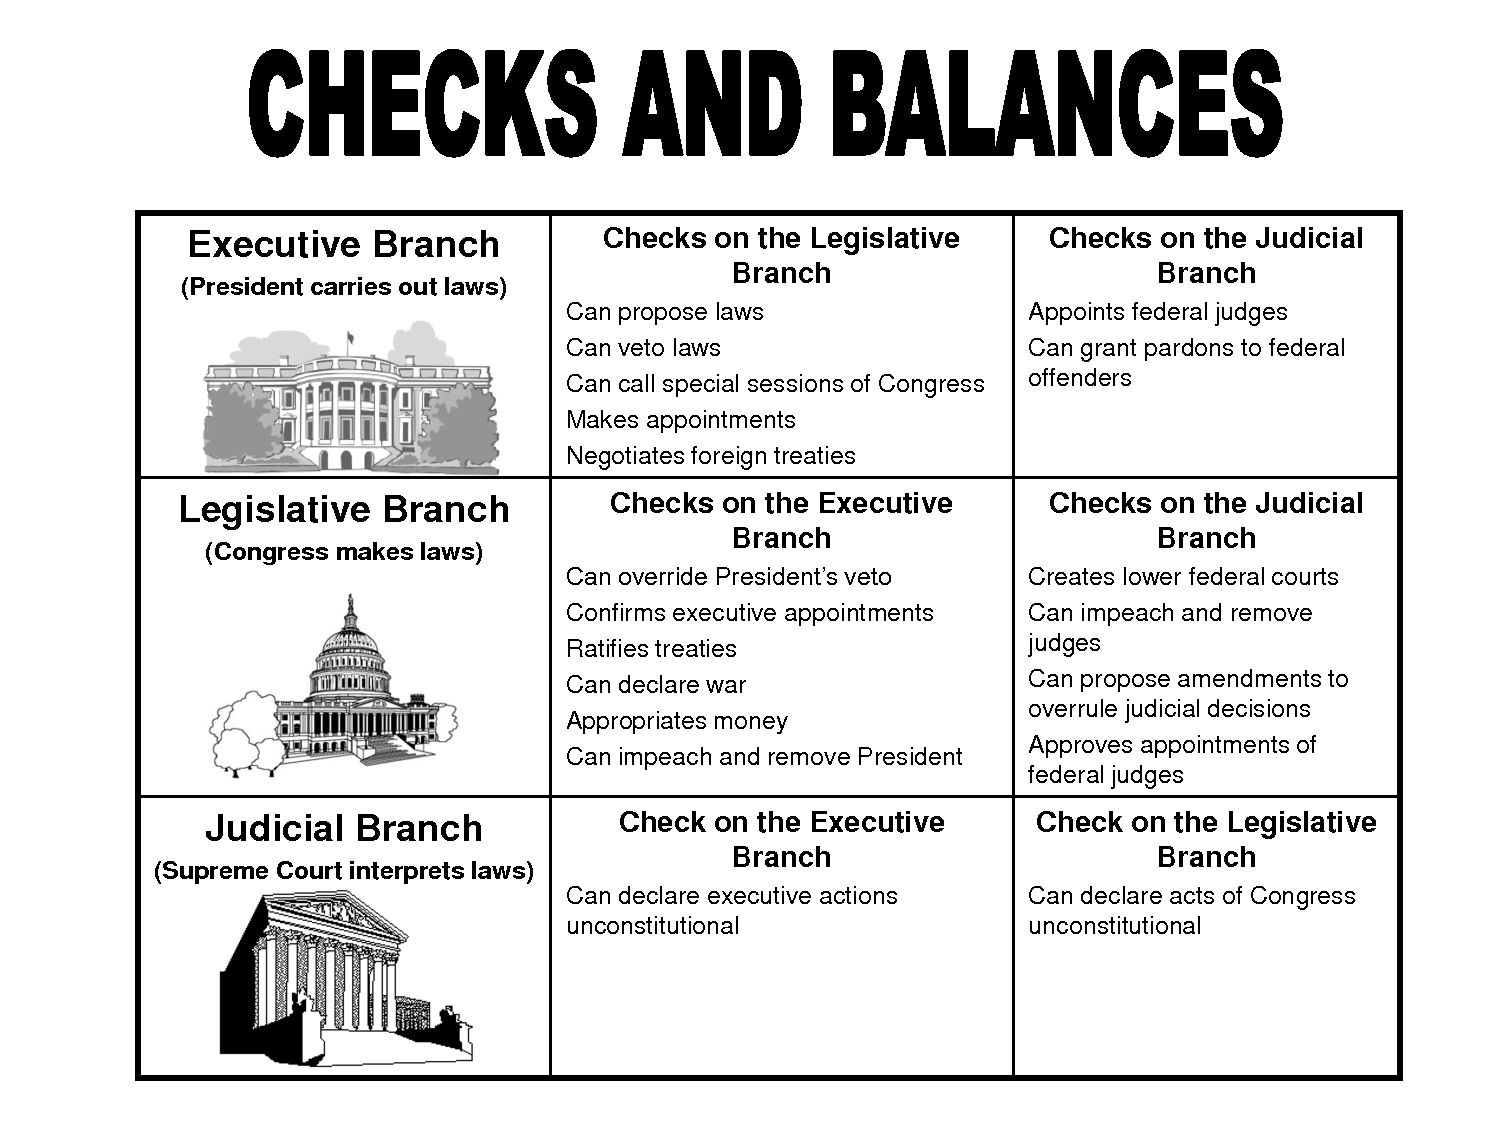 Worksheets Three Branches Of Government Worksheet top three branches of government chart for kids danasrghtop kindergarten worksheet eworksheet